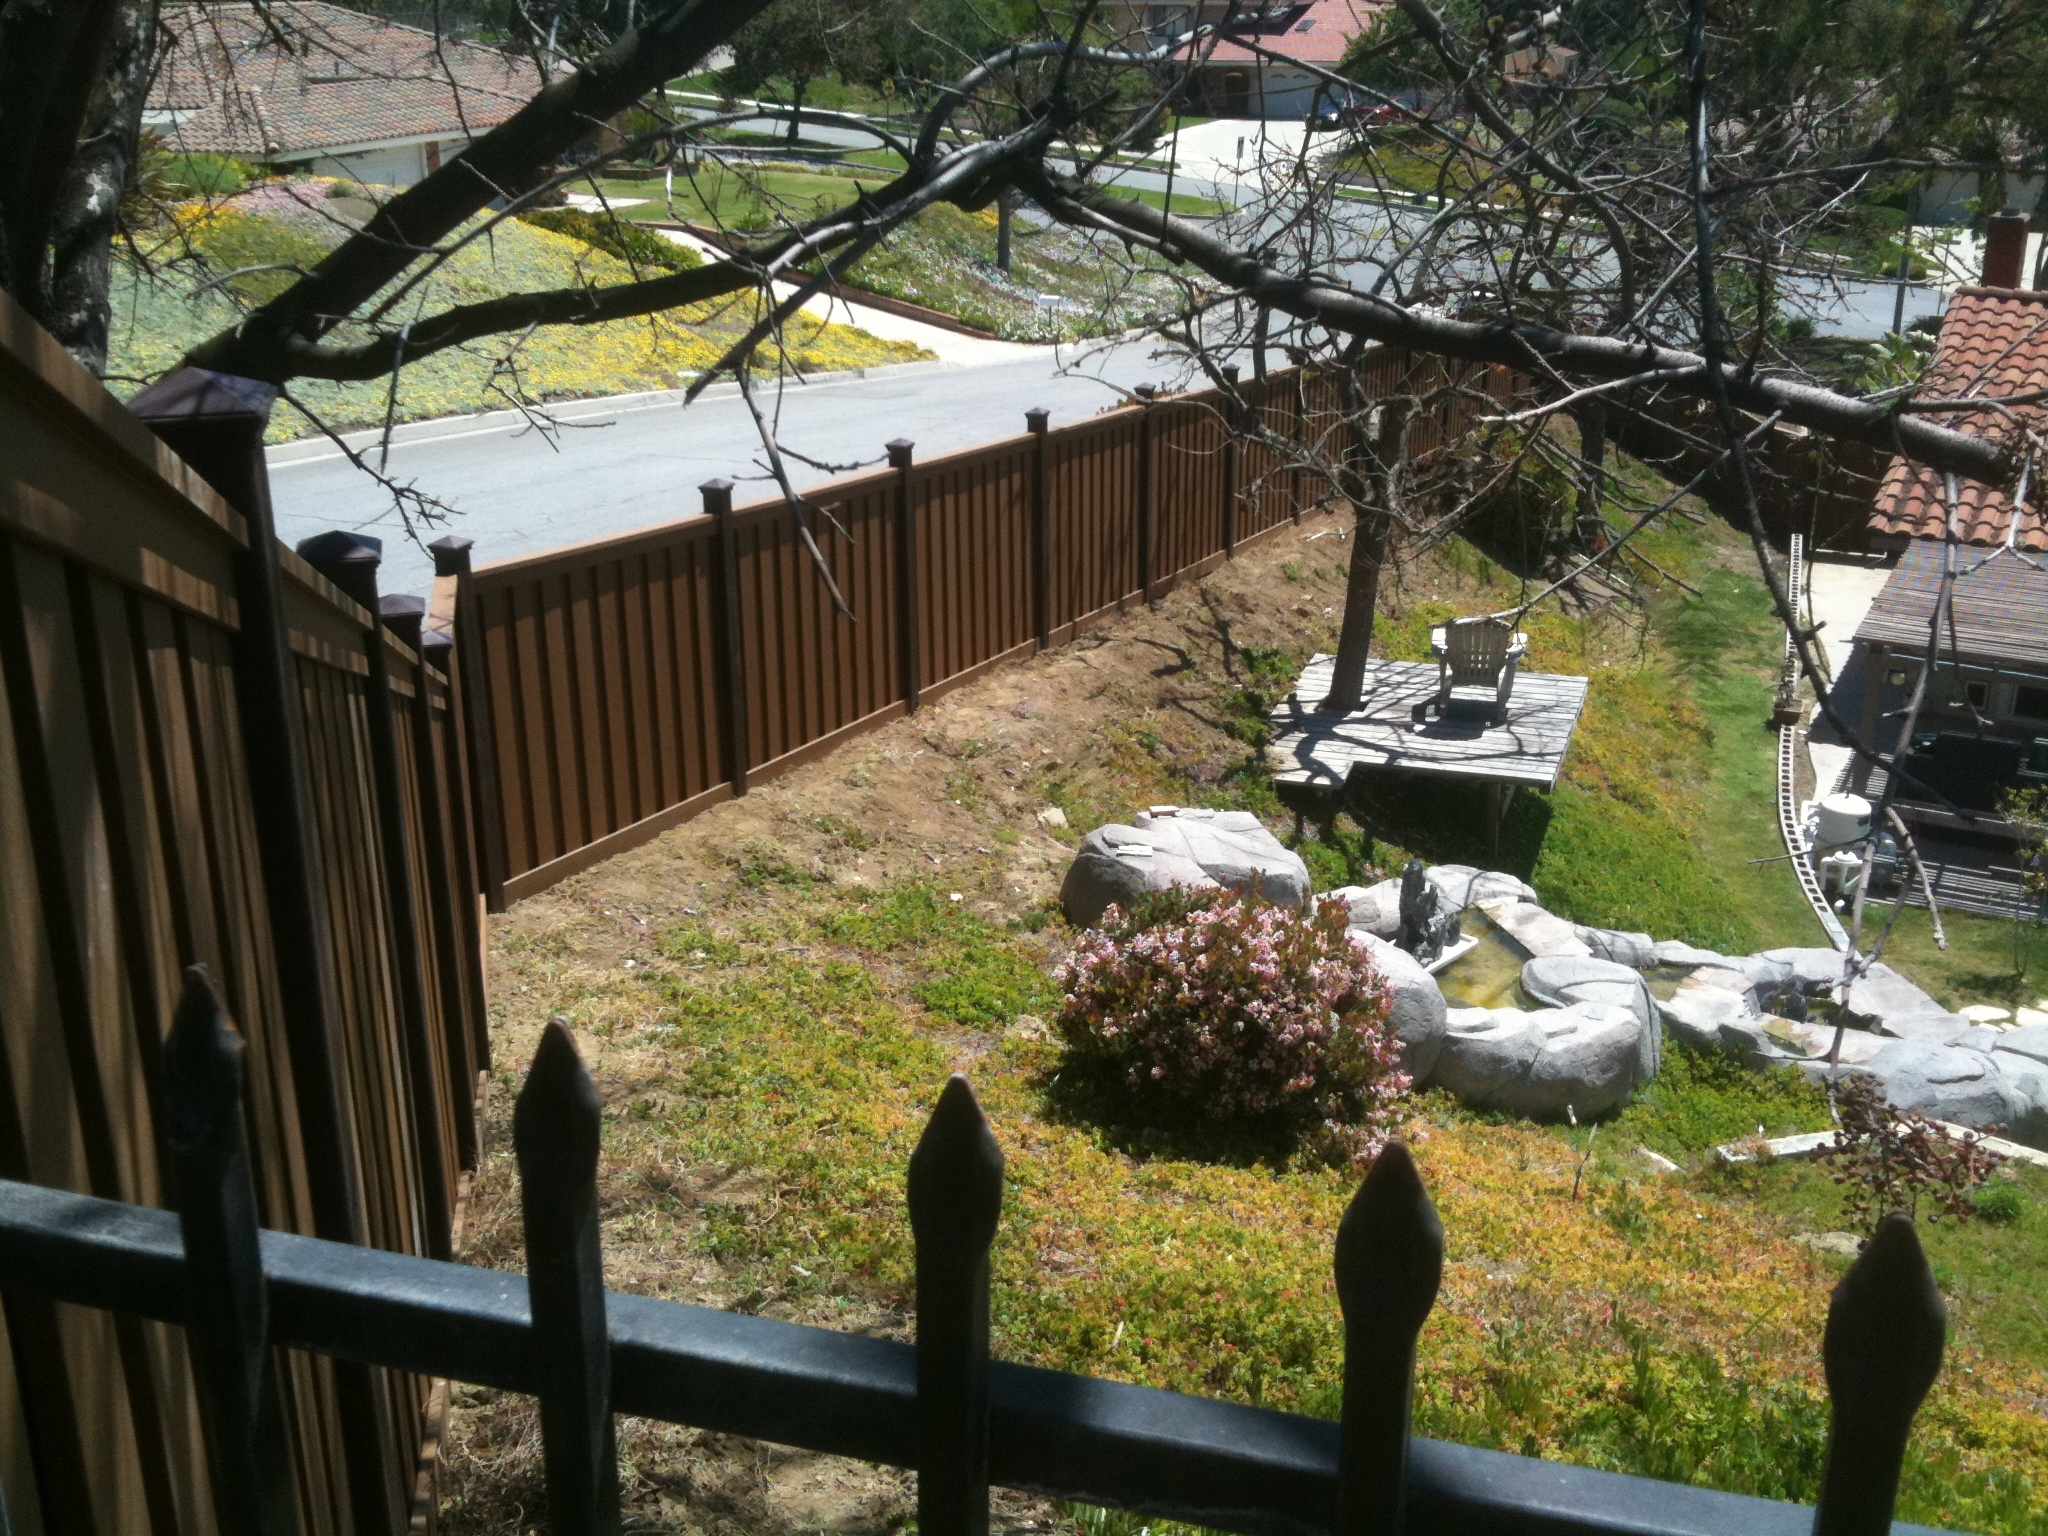 Sloping Archives - Trex Fencing, the Composite Alternative to Wood ...